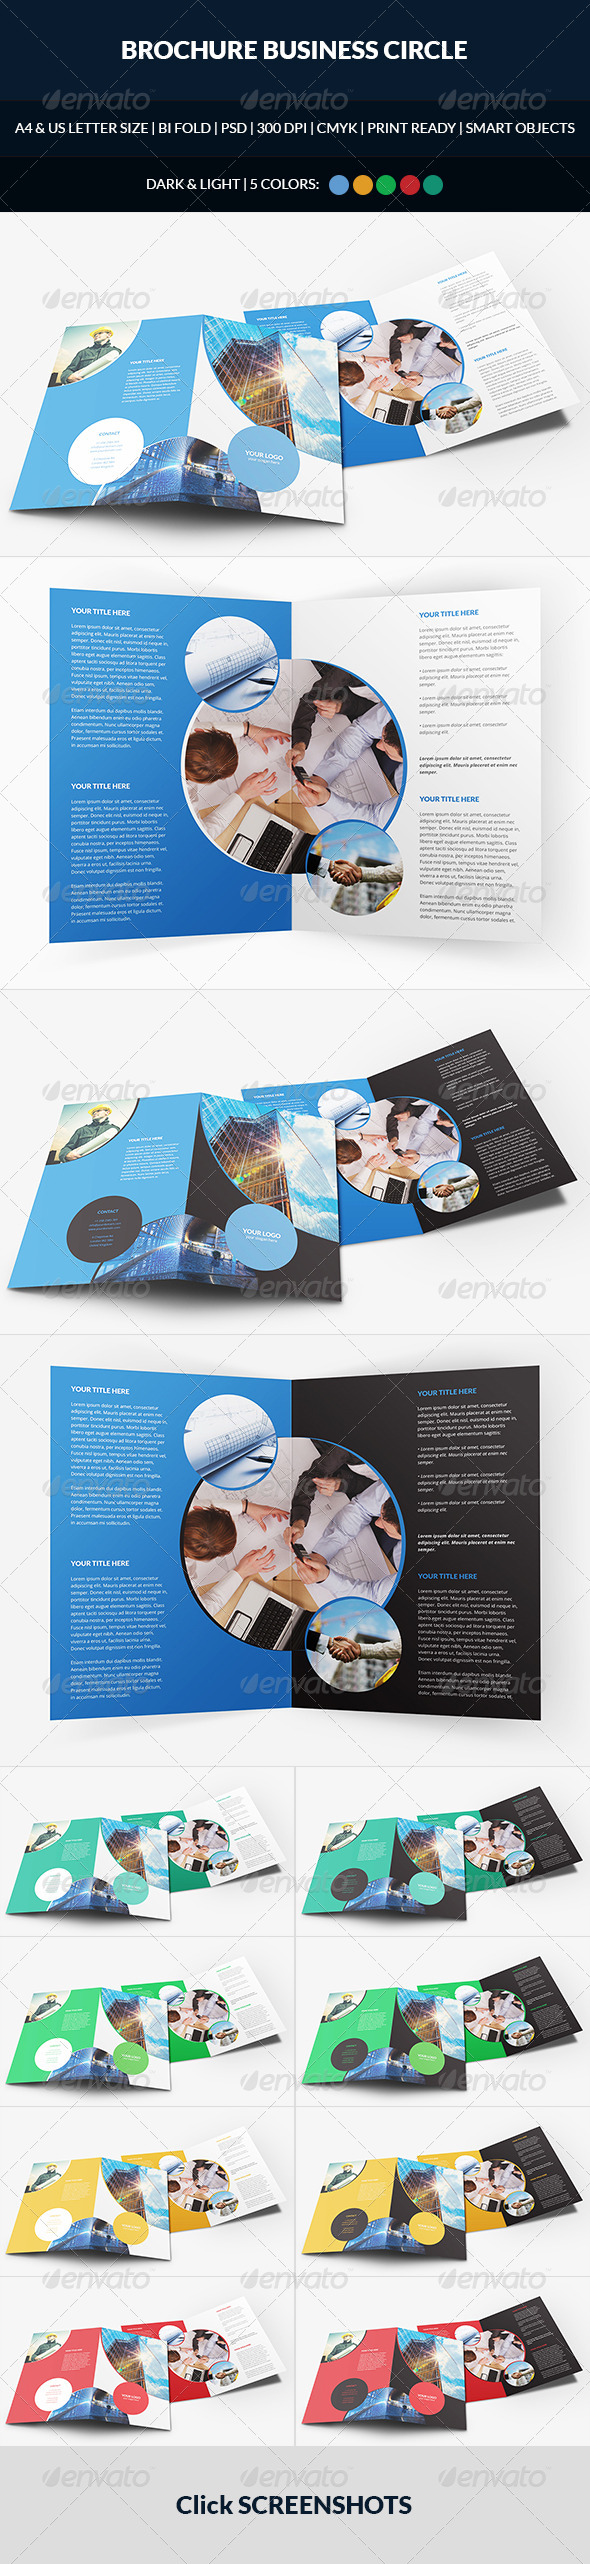 GraphicRiver Brochure Business Circle Bi-Fold 7482509